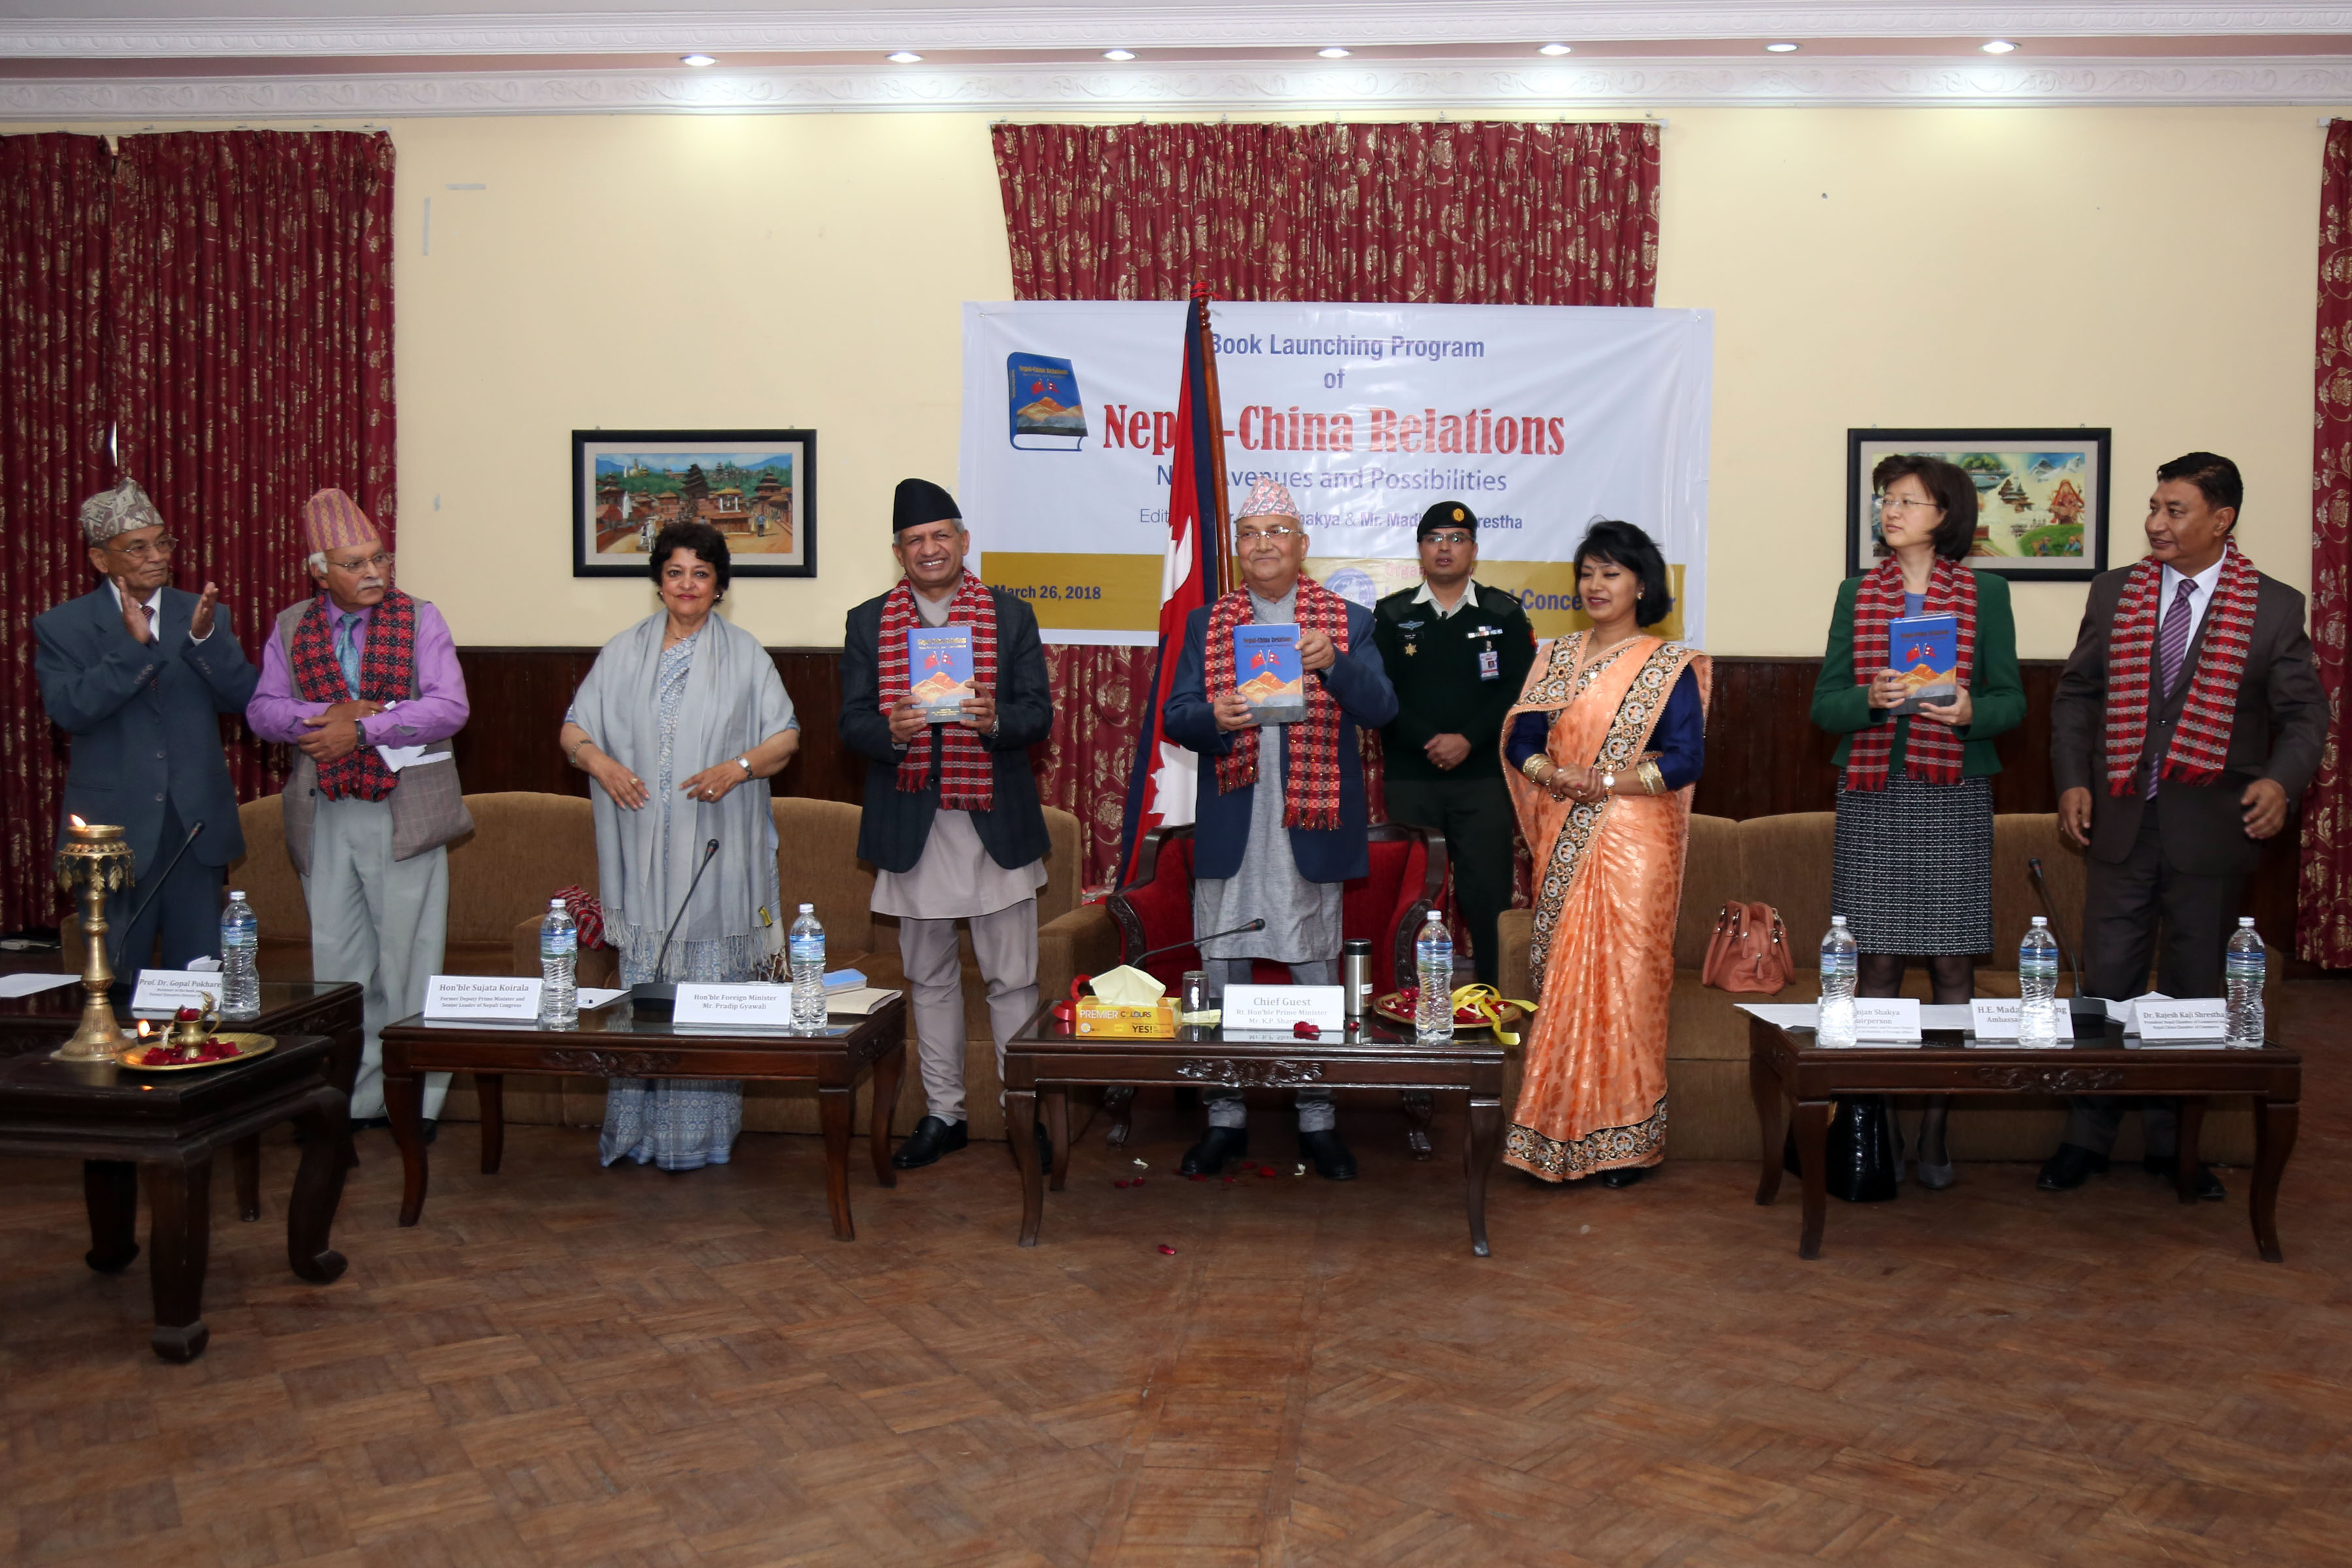 Prime Minister KP Oli, Foreign Minister Pradeep Kumar Gyawali release a book on 'Nepal-China relations' amid a function held at the Prime Minister's official residence in Baluwatar on Monday, March 26, 2018.